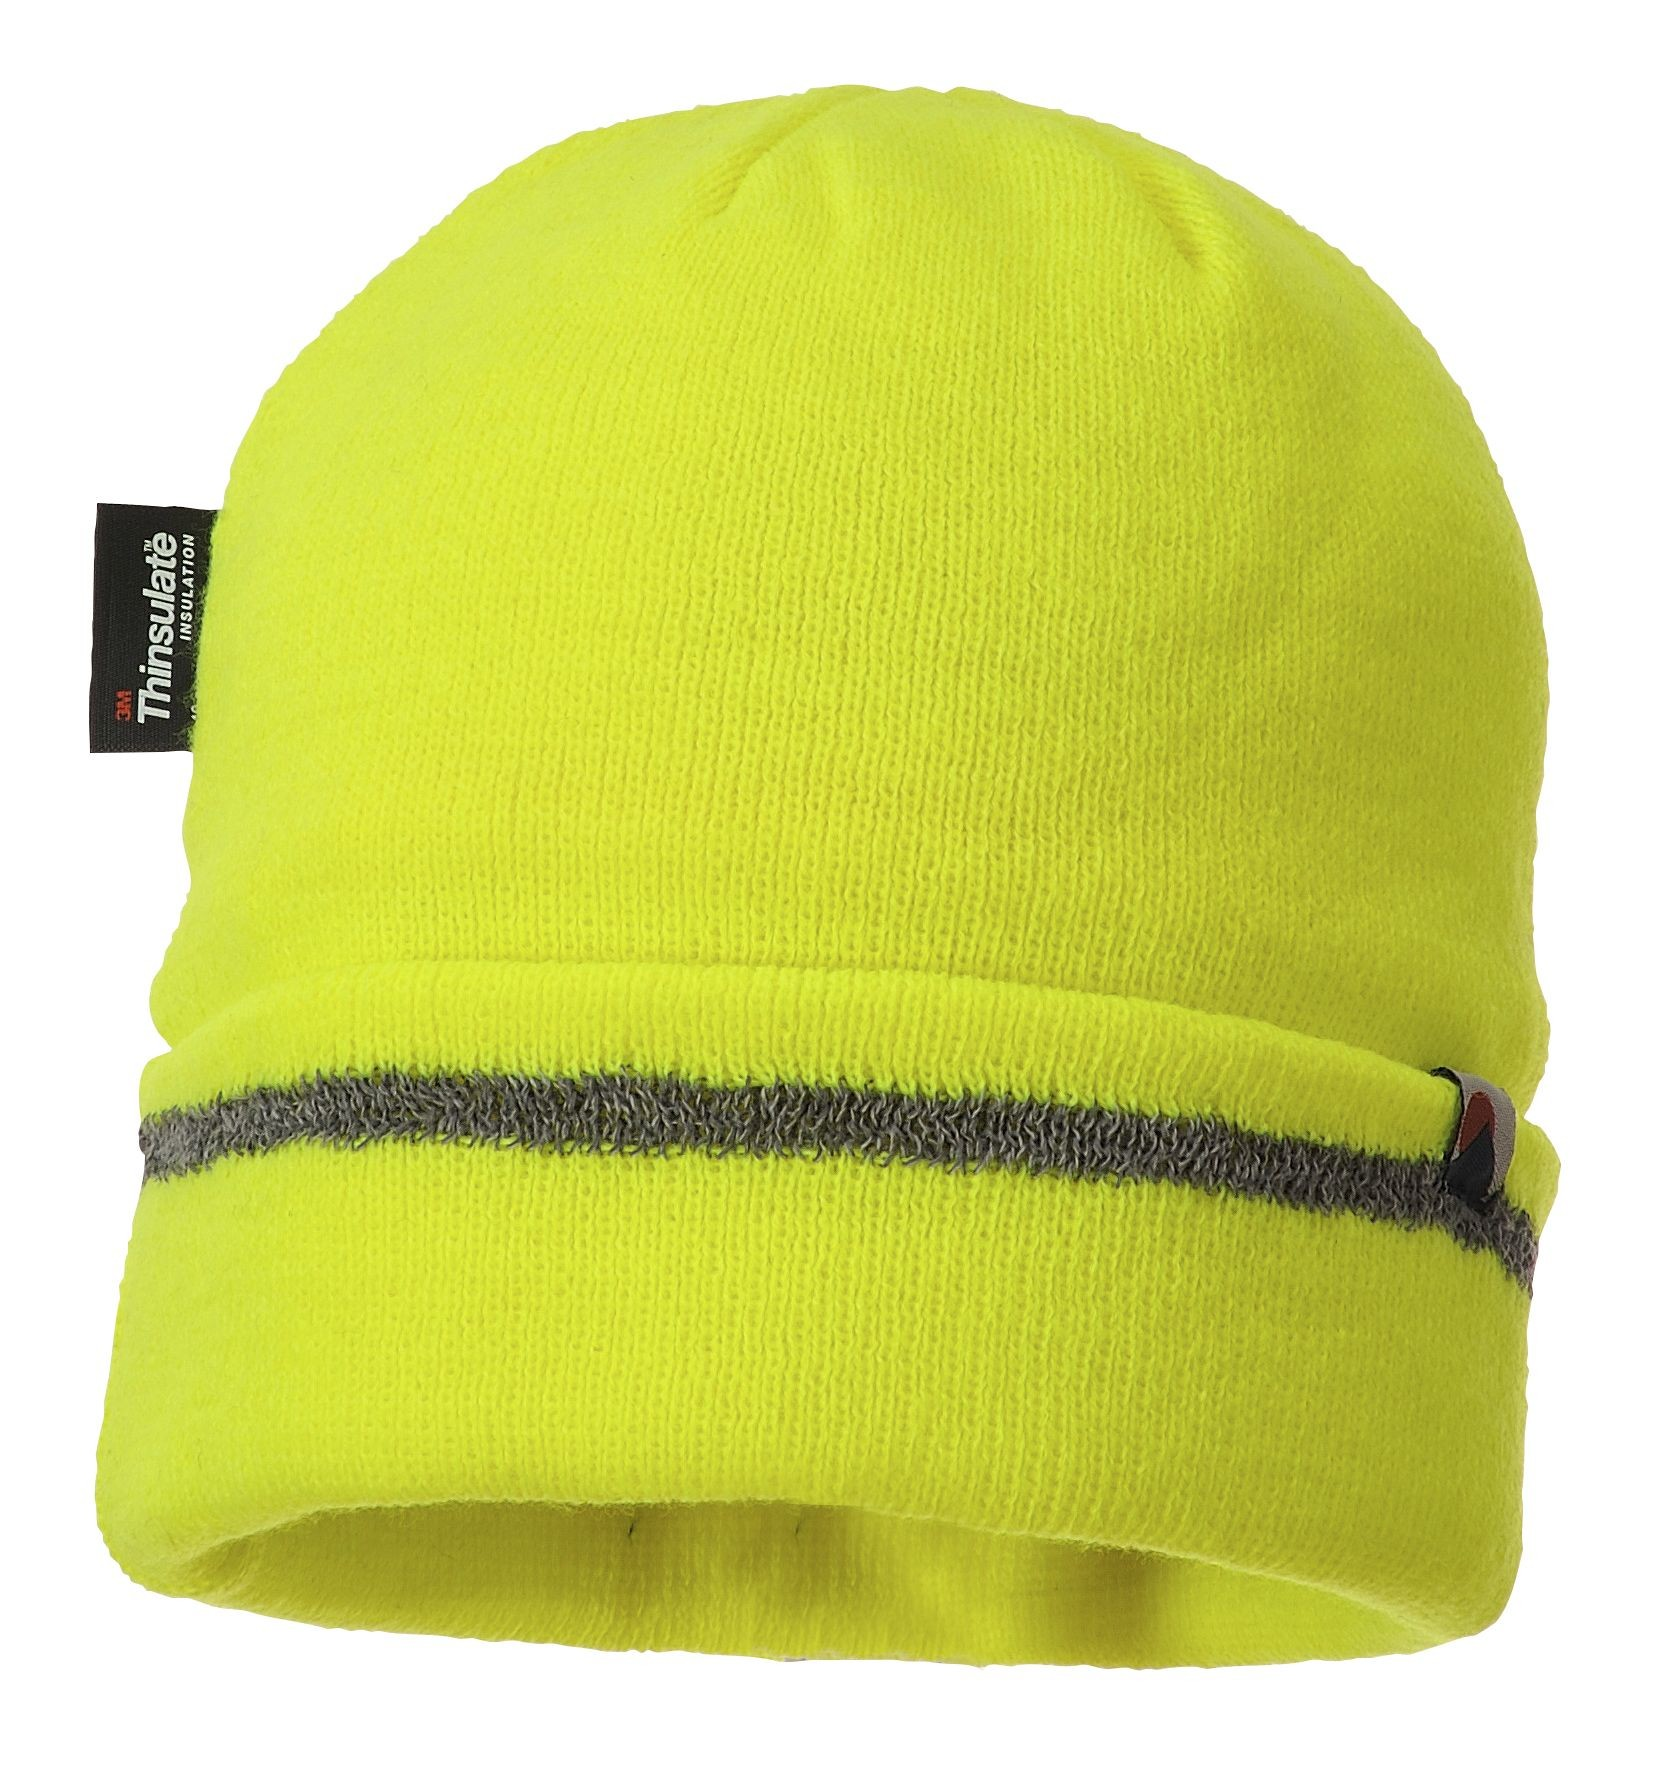 f77b986e3c167a Thinsulate Lined Knit Cap with Reflective Trim